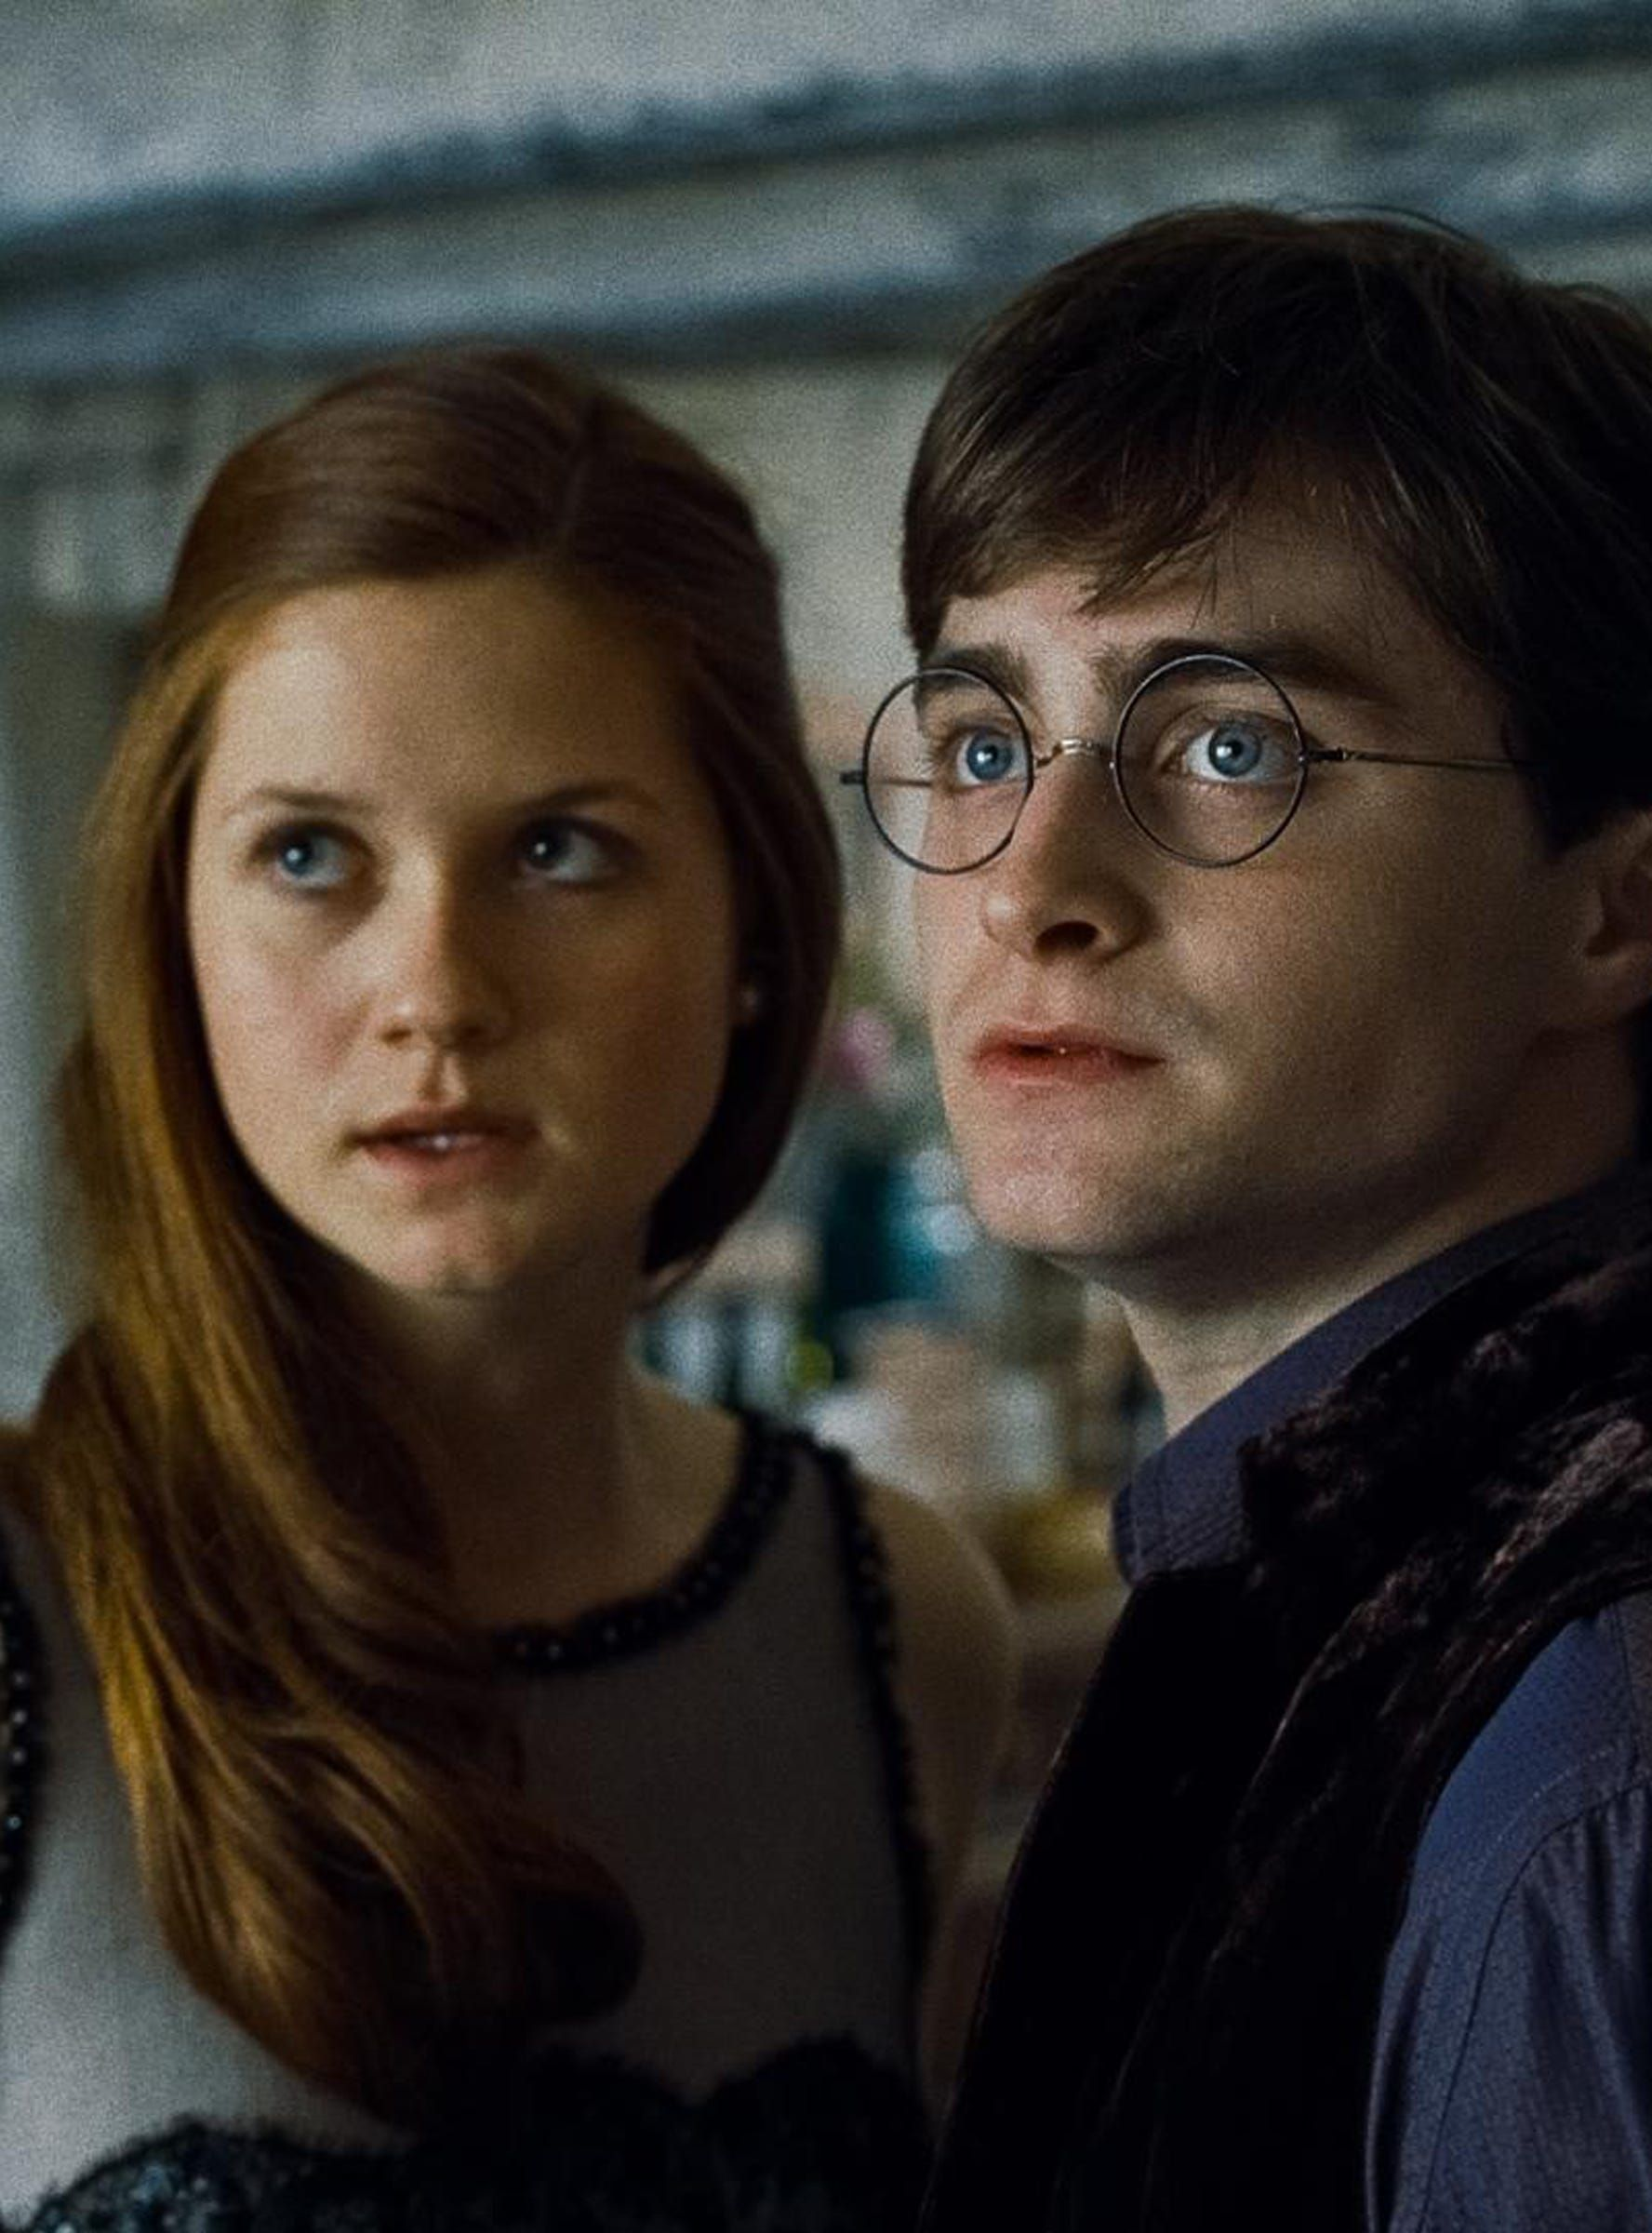 This Harry Potter Theory Is Trying To Sully Ginny Weasly S Good Name Harry Potter Ginny Harry Potter Theories Ginny Weasley